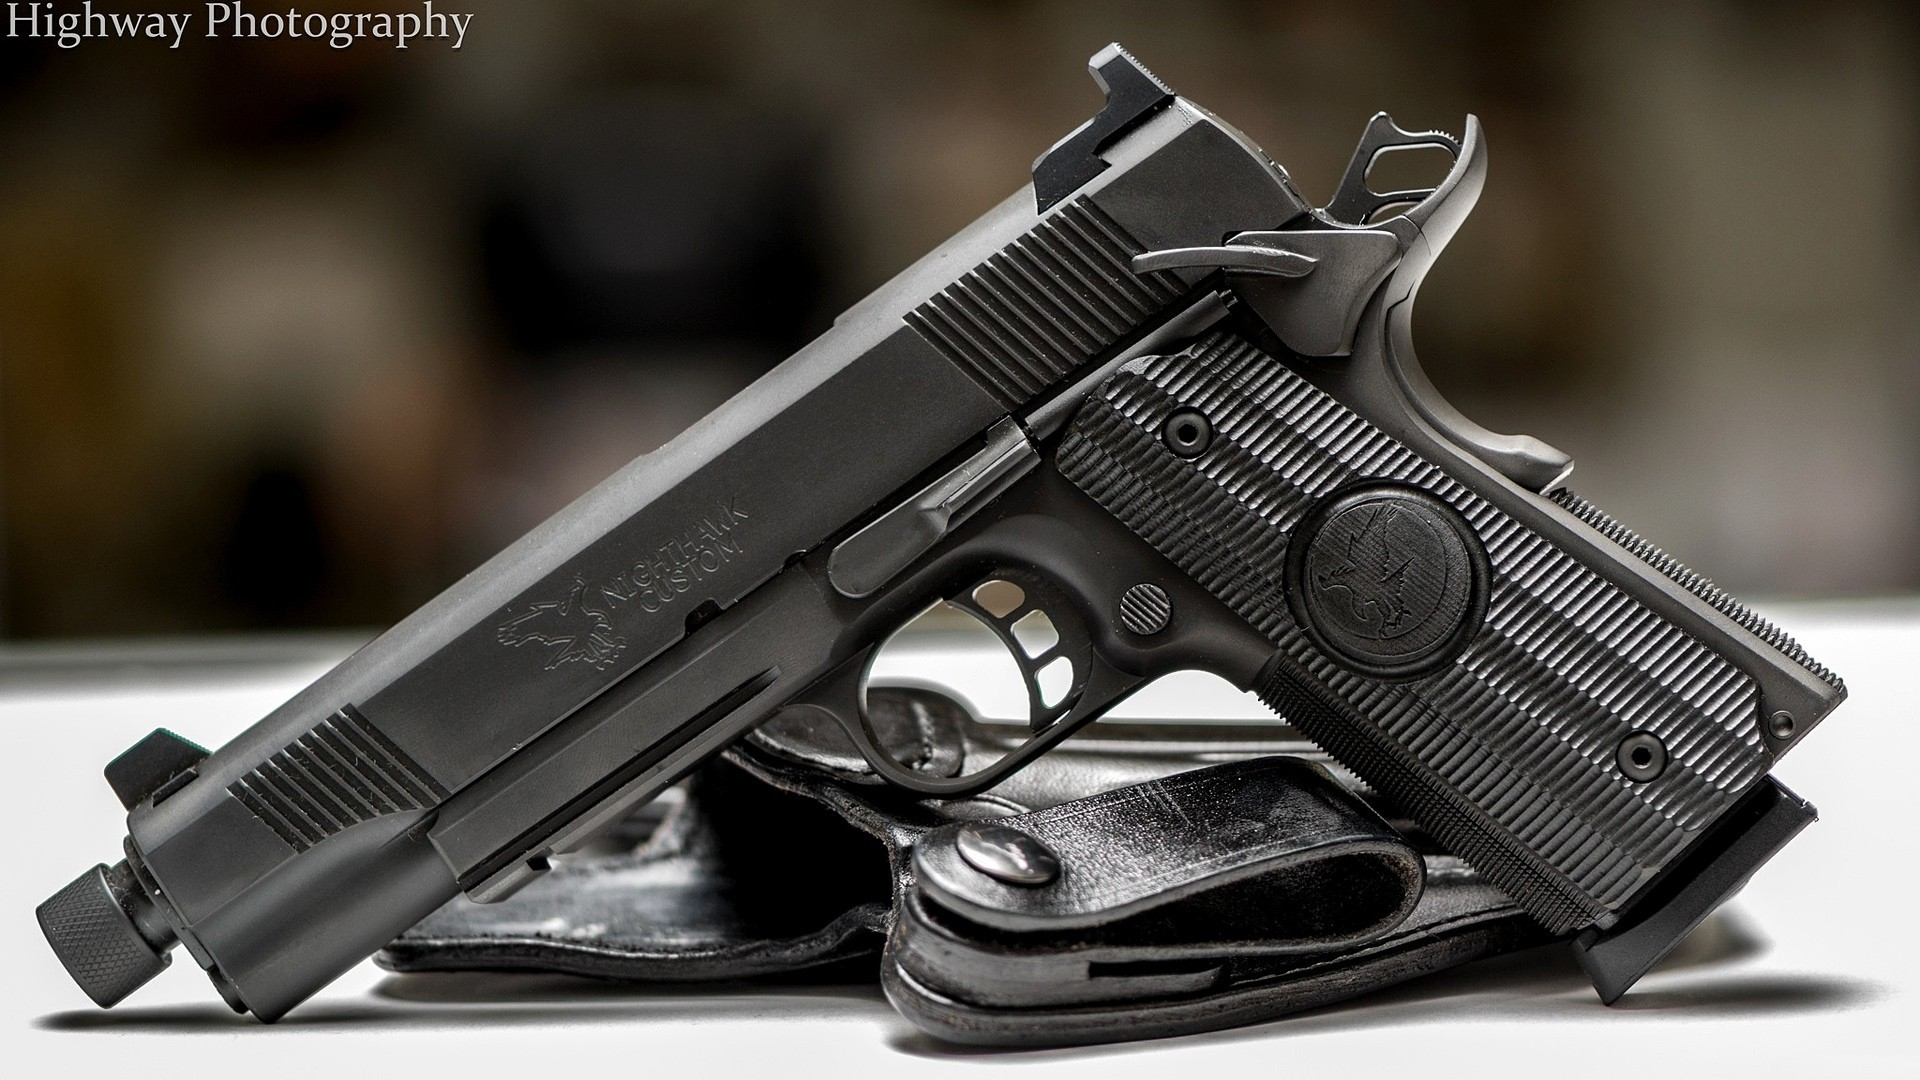 1920x1080 Nighthawk GRP Recon #1911 #nighthawk #colt #grp | Shoot / Firearms |  Pinterest | 45 acp, Guns and Tactical gear